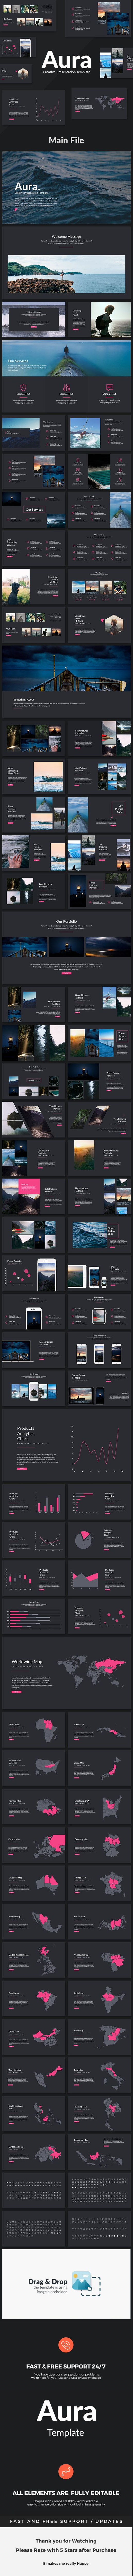 Aura - Creative Powerpoint Template